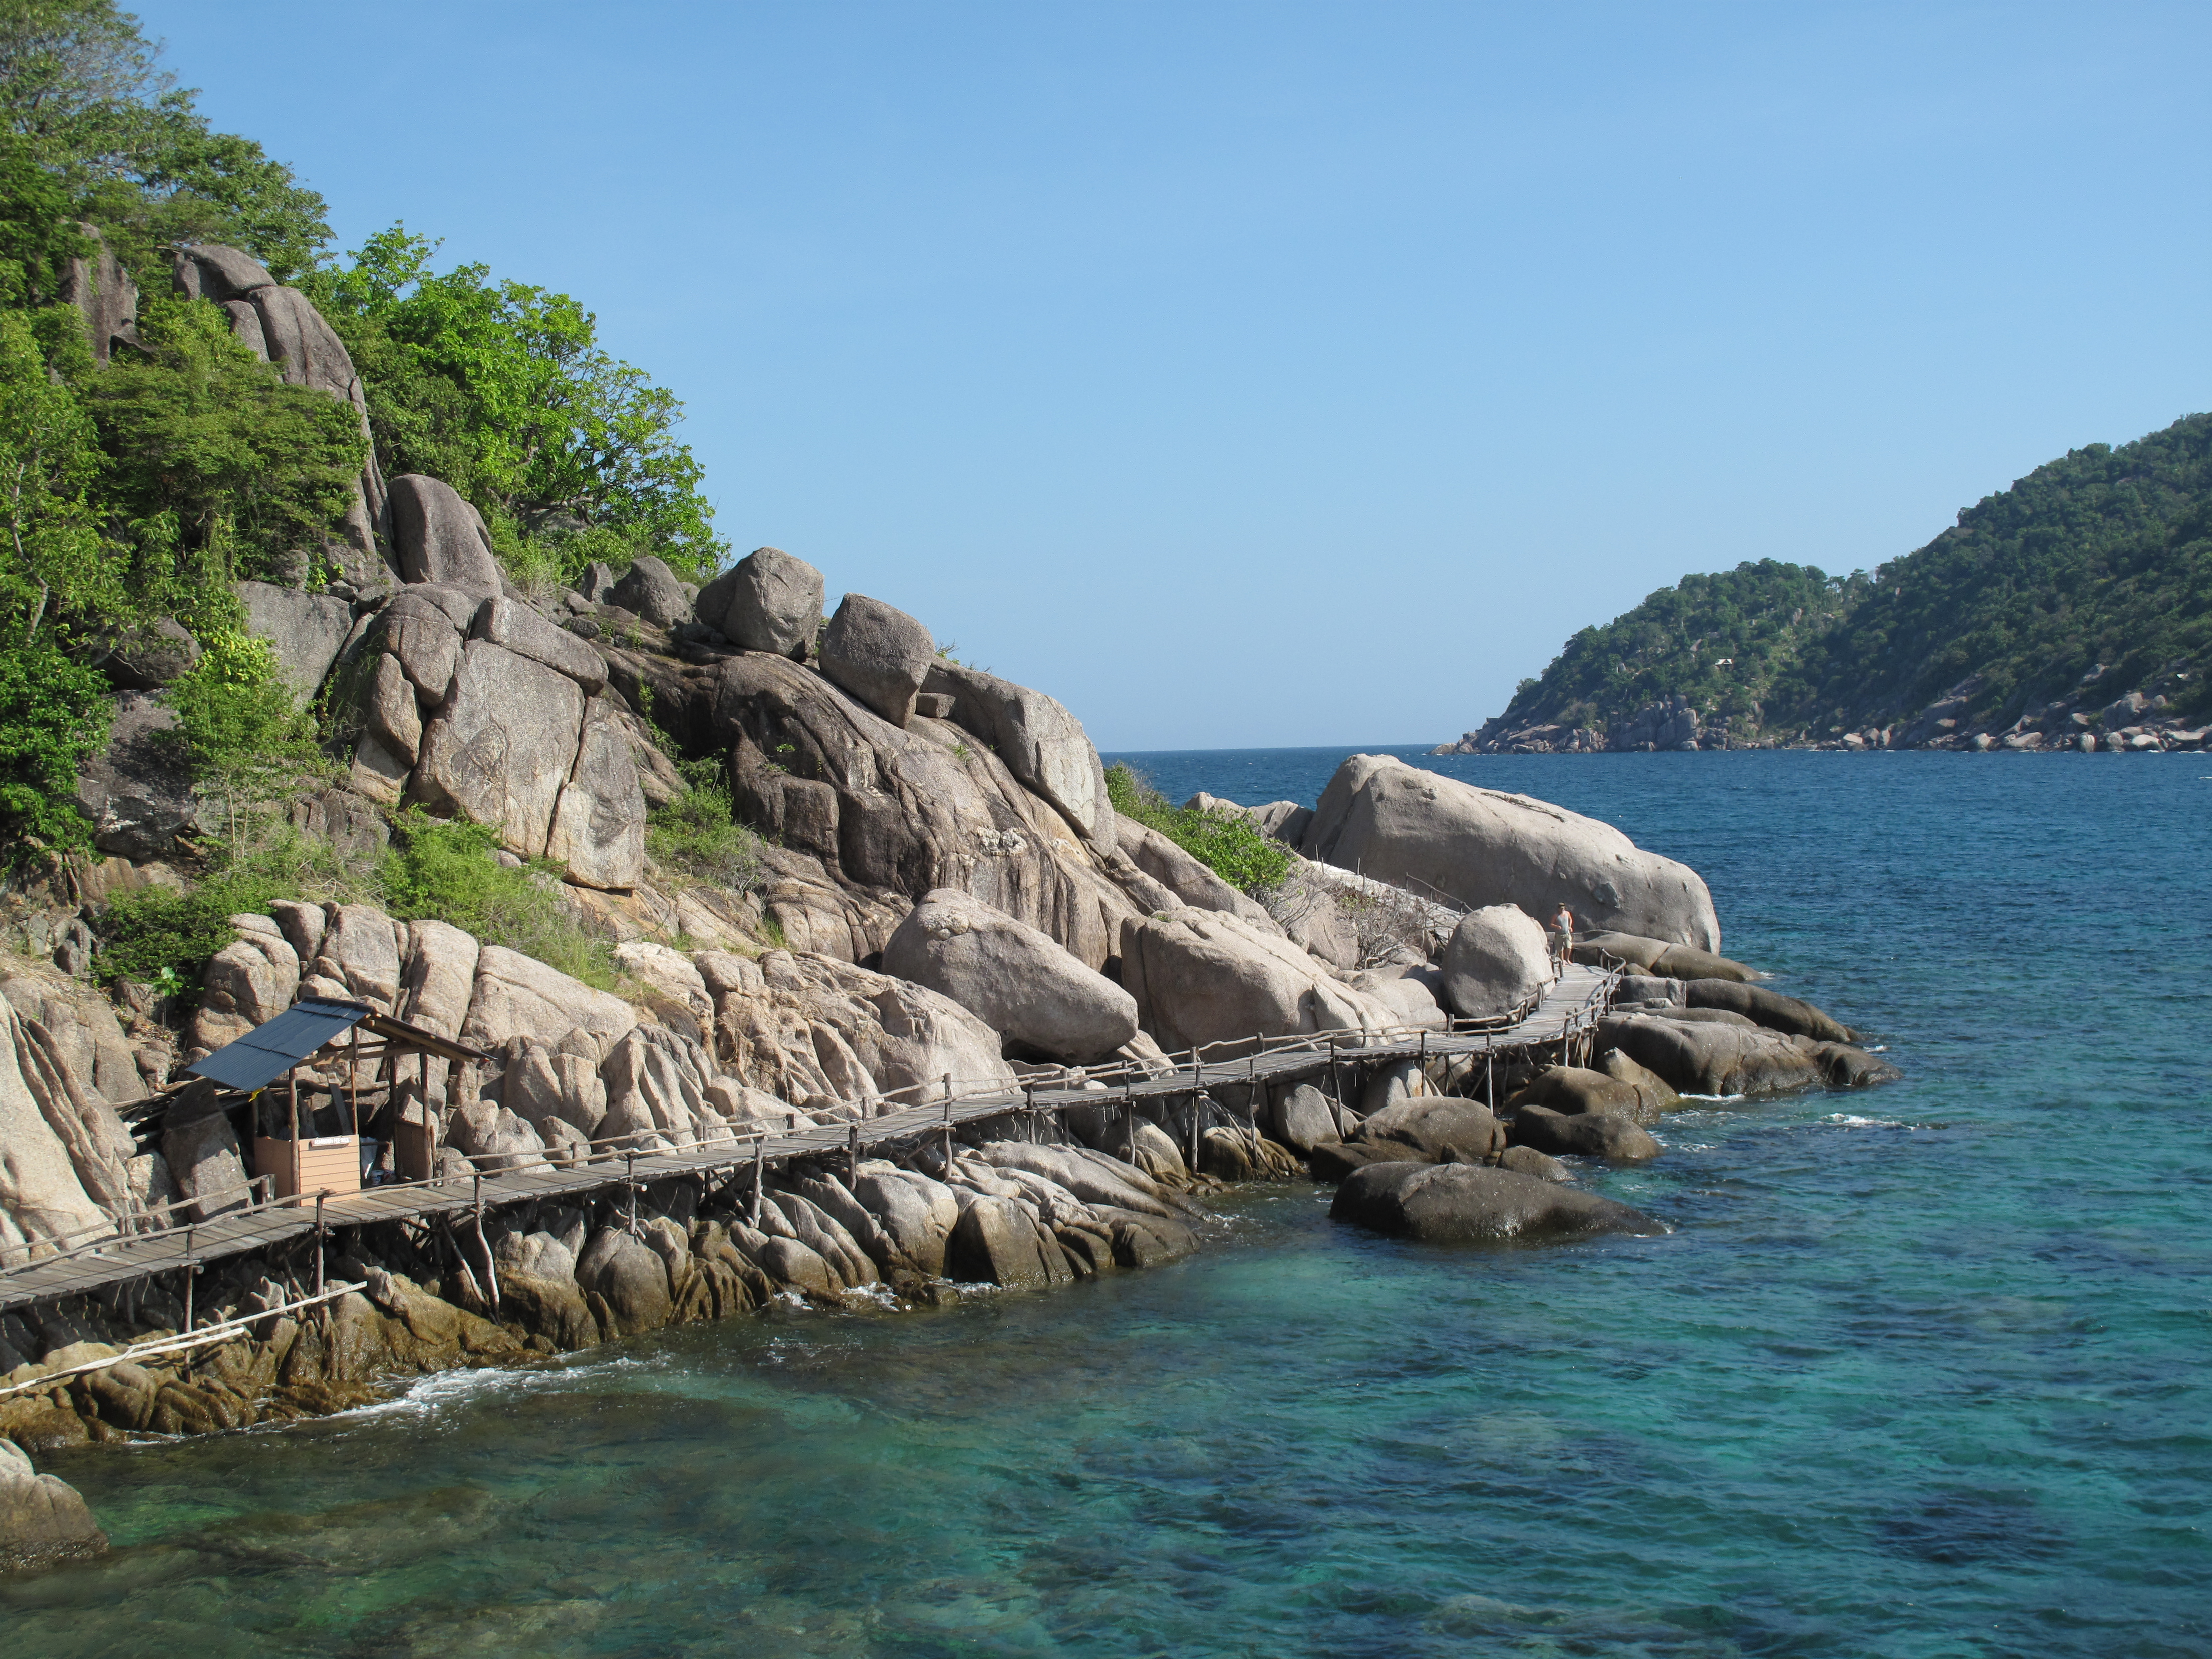 Koh nang yuan island in thailand thousand wonders - Nangyuan island dive resort ...